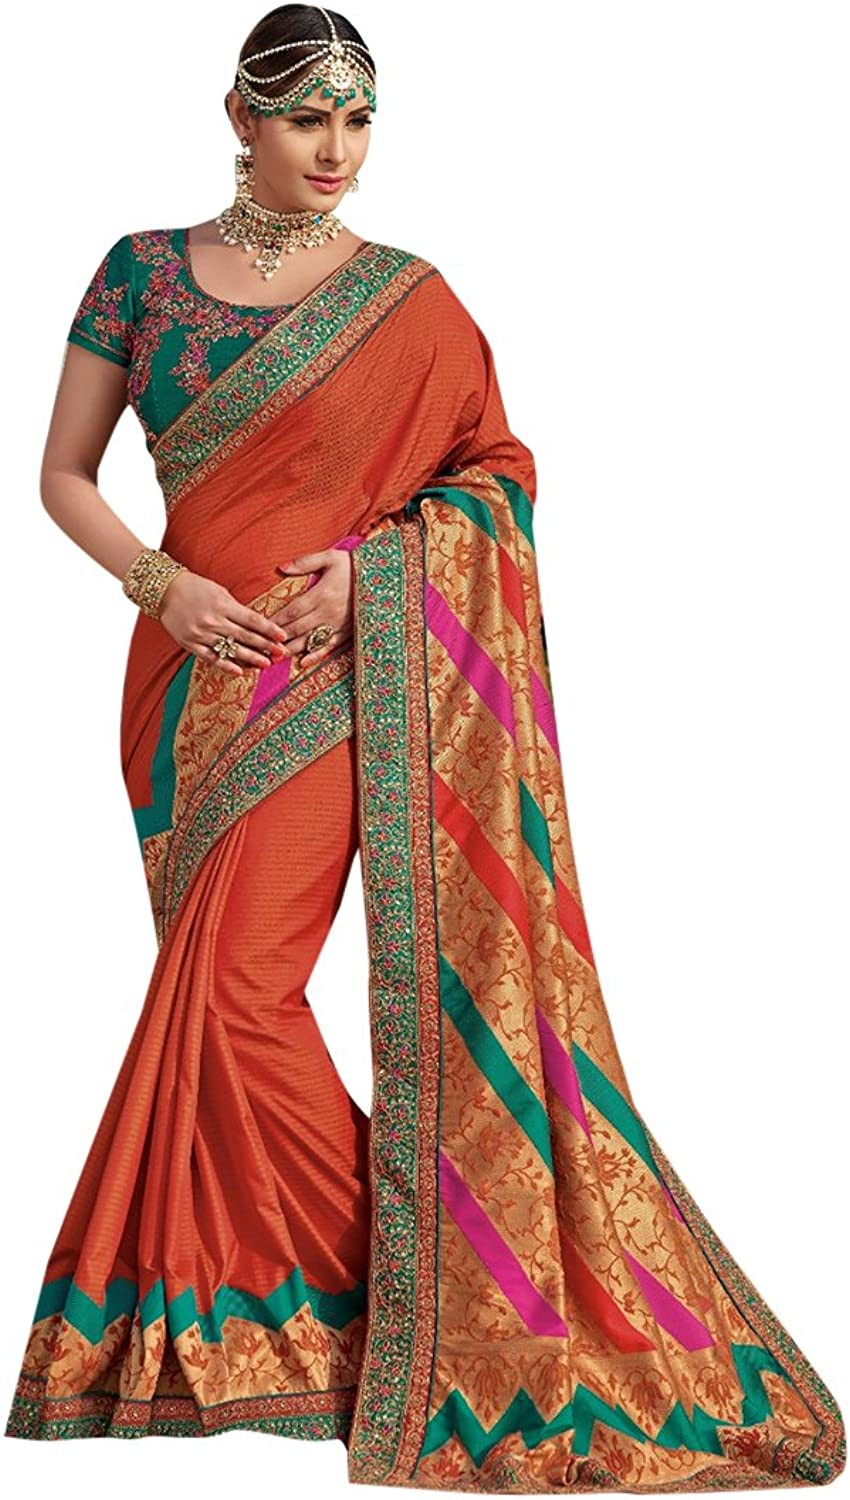 Bollywood Bridal Saree Sari for Women Collection Blouse Wedding Party Wear Ceremony 822